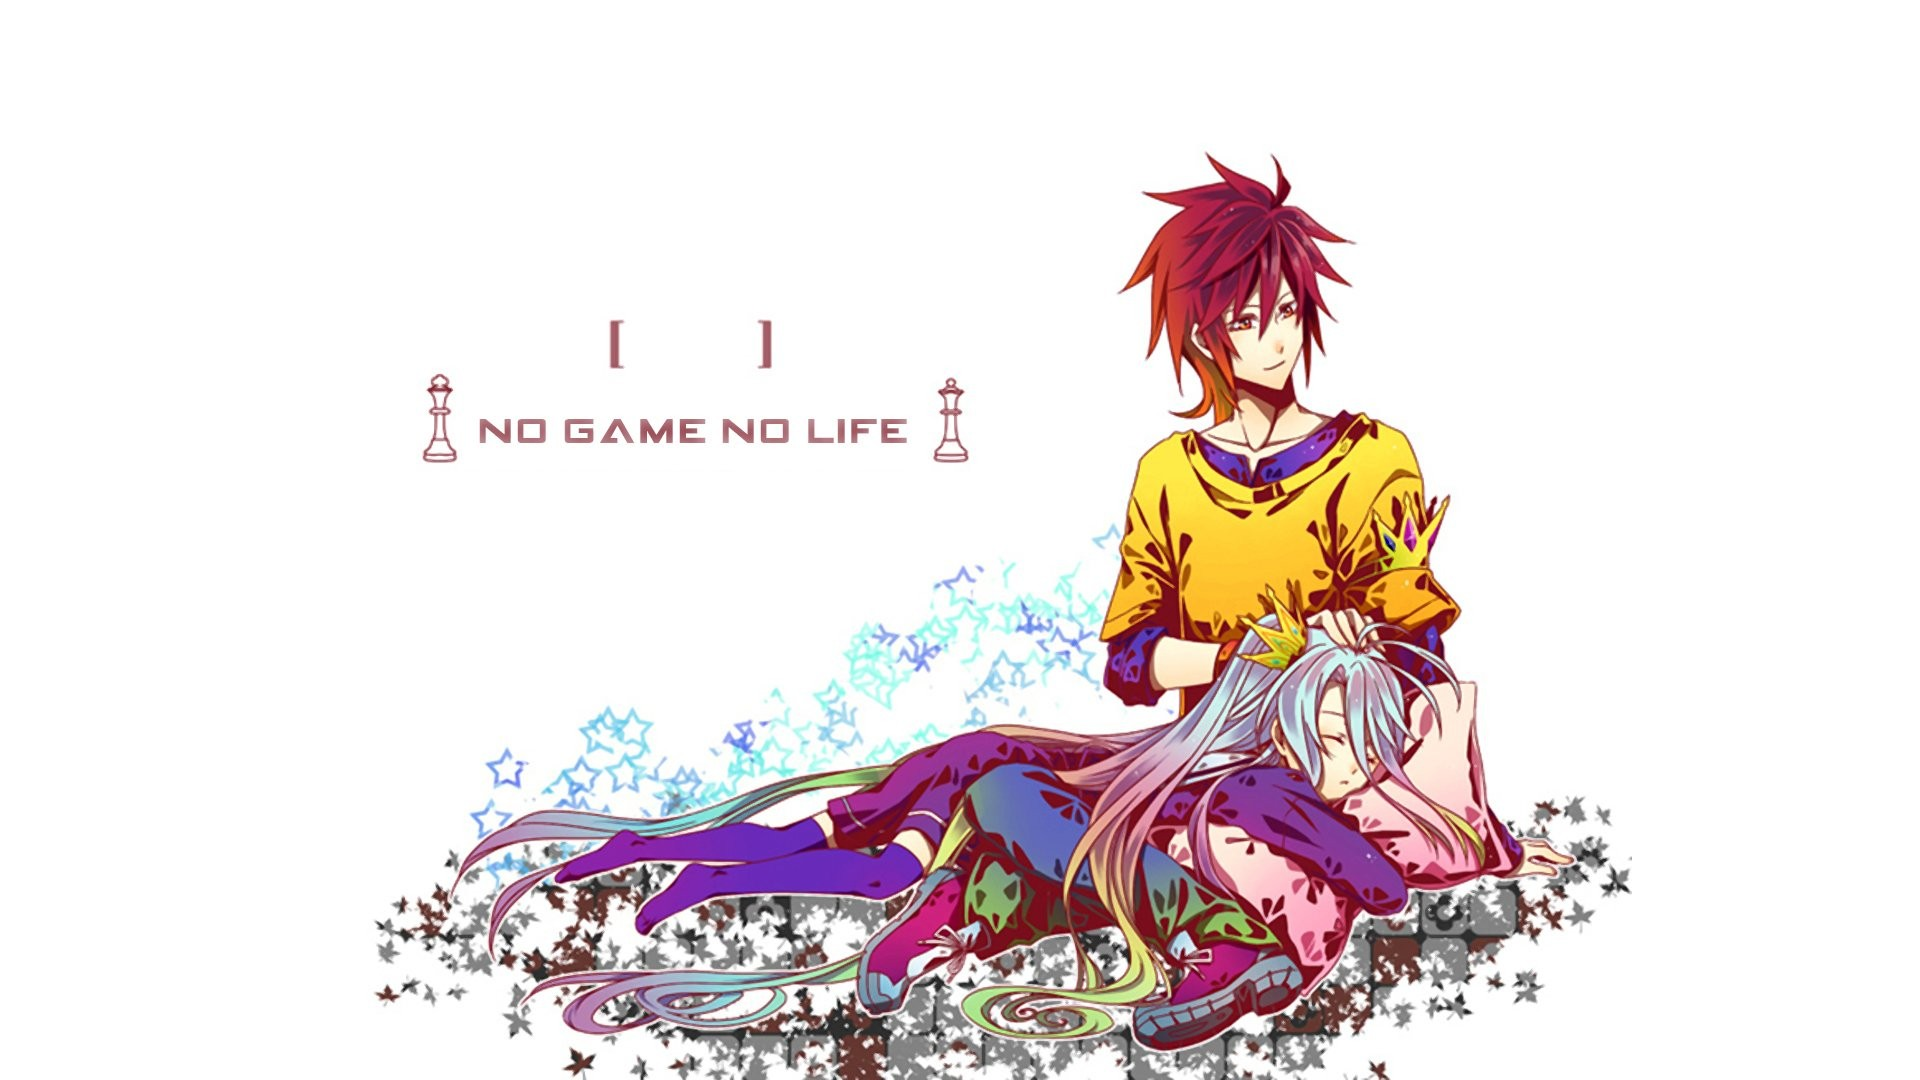 No Game No Life Wallpaper Download Free Full Hd Backgrounds